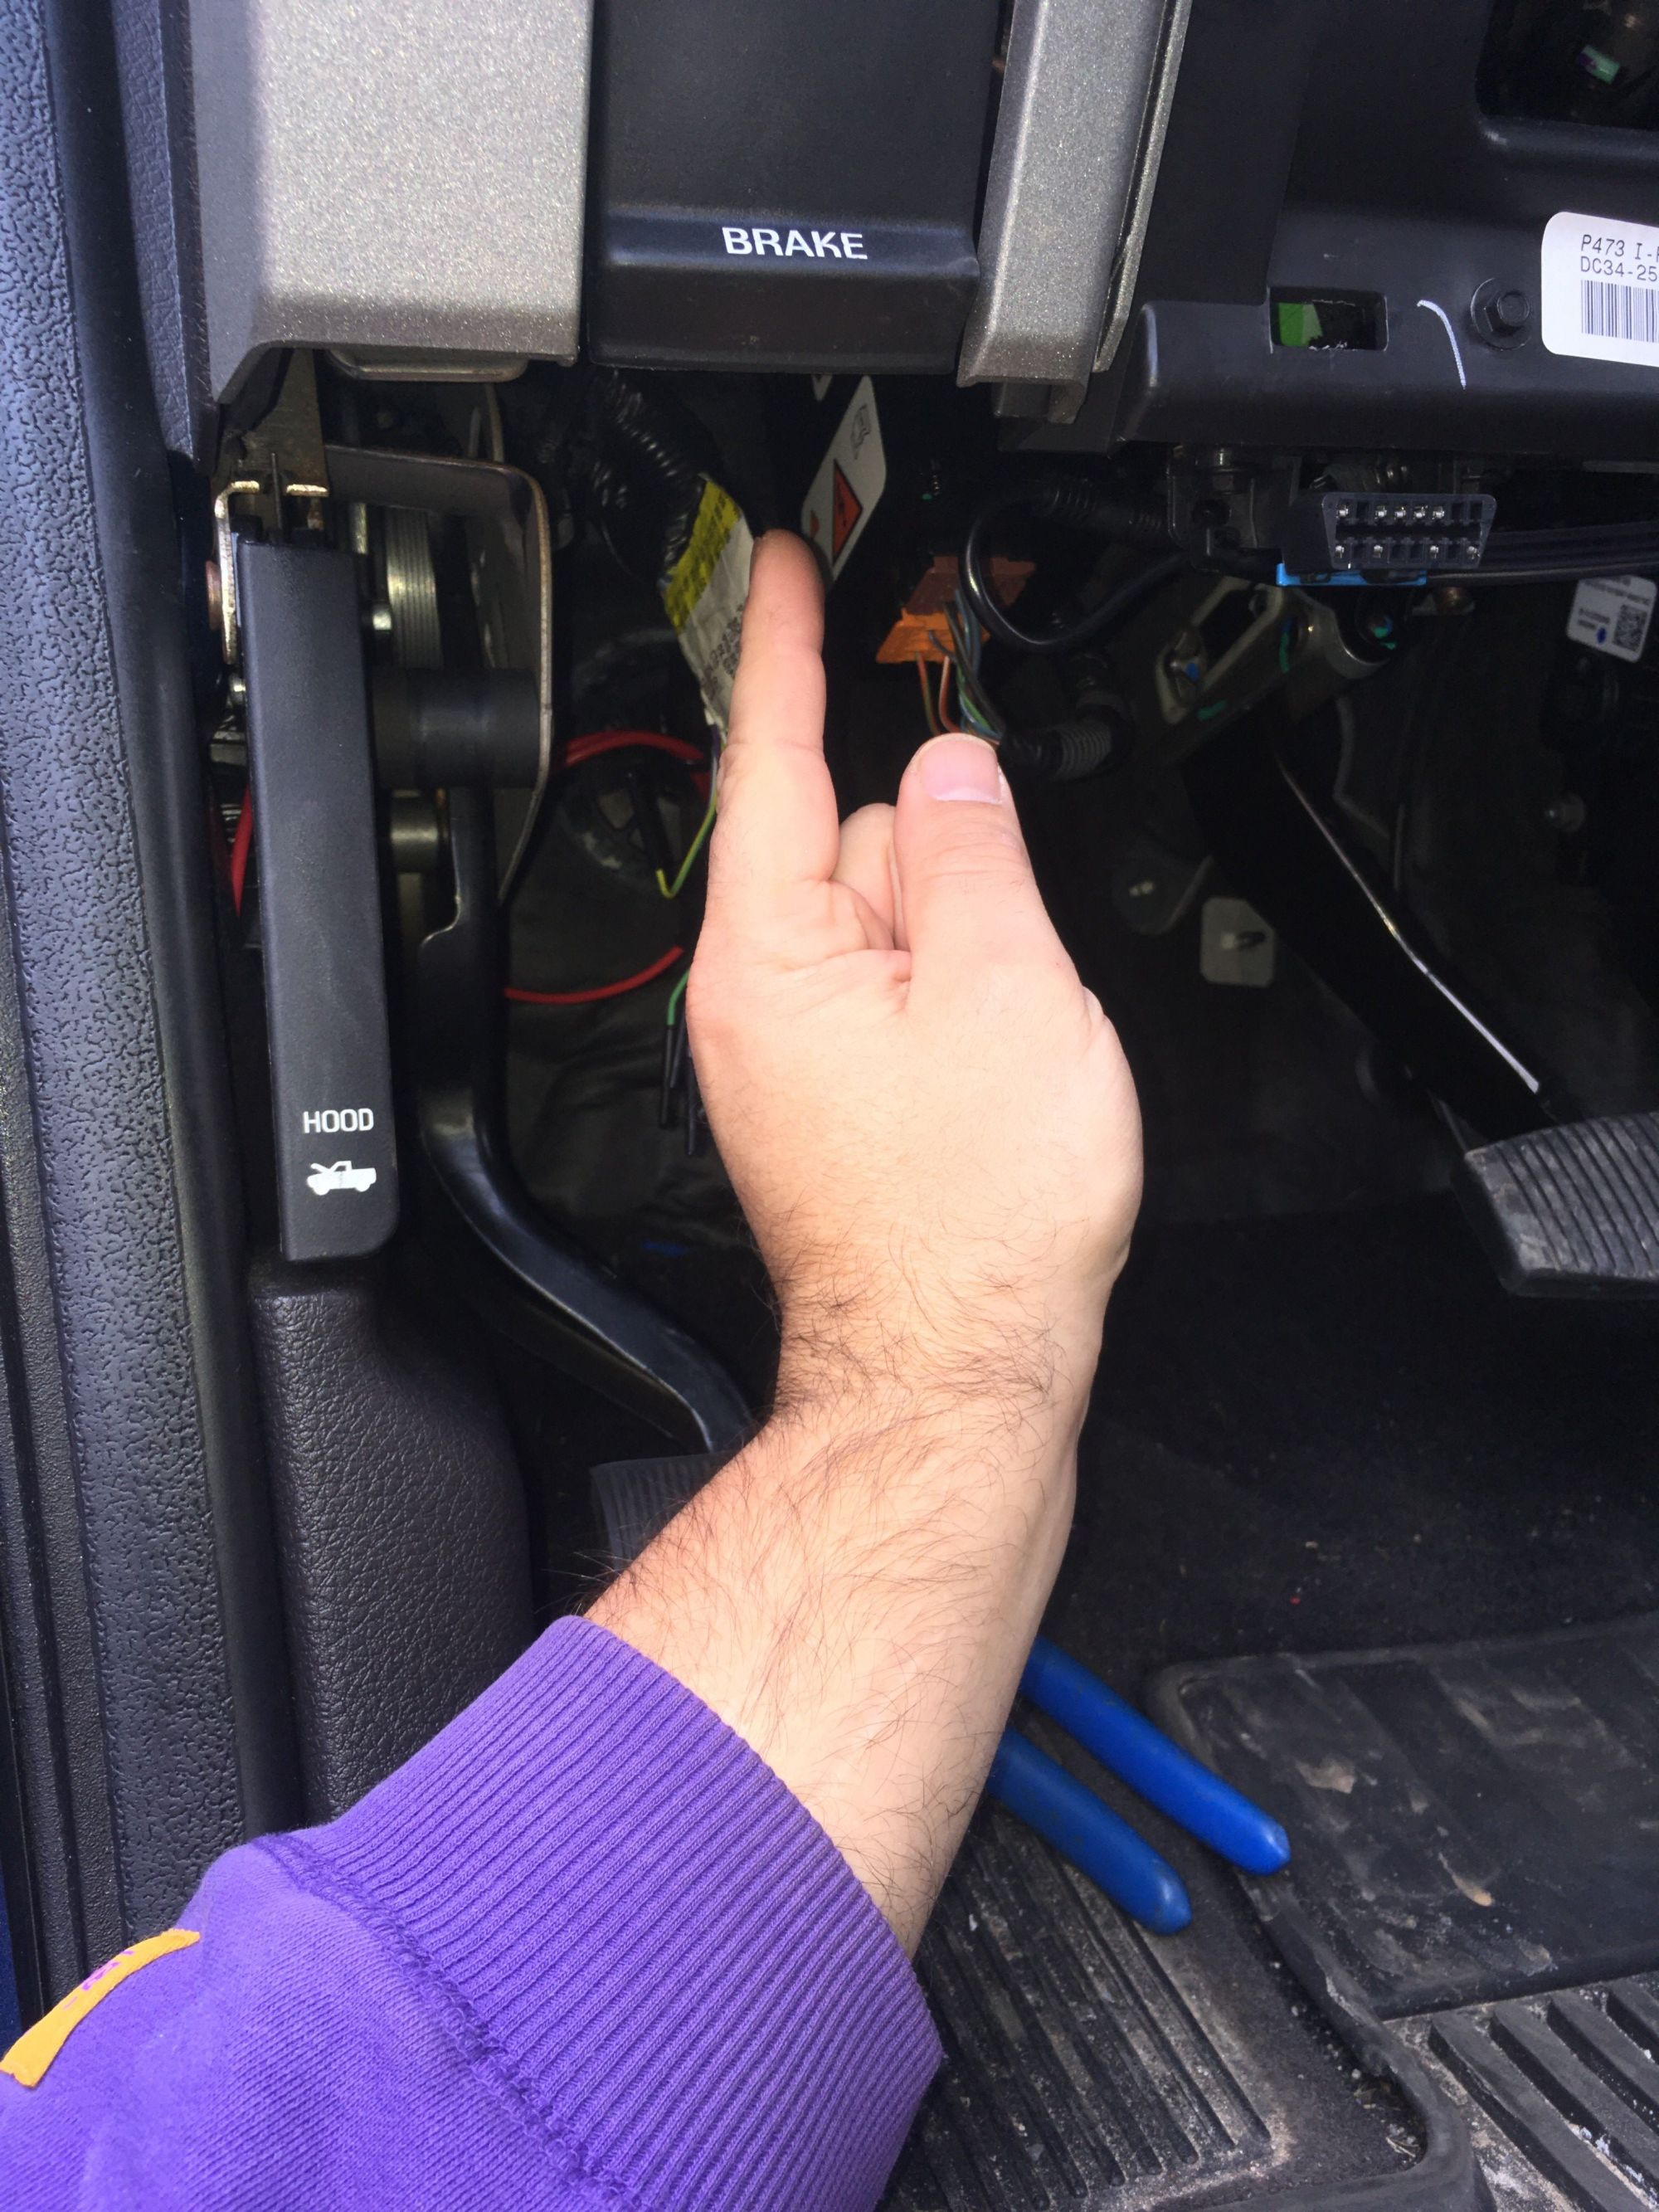 hight resolution of upfitter switch wires are above the accessory bundle almost in line with your knee when sitting down they are folded over and hard to see